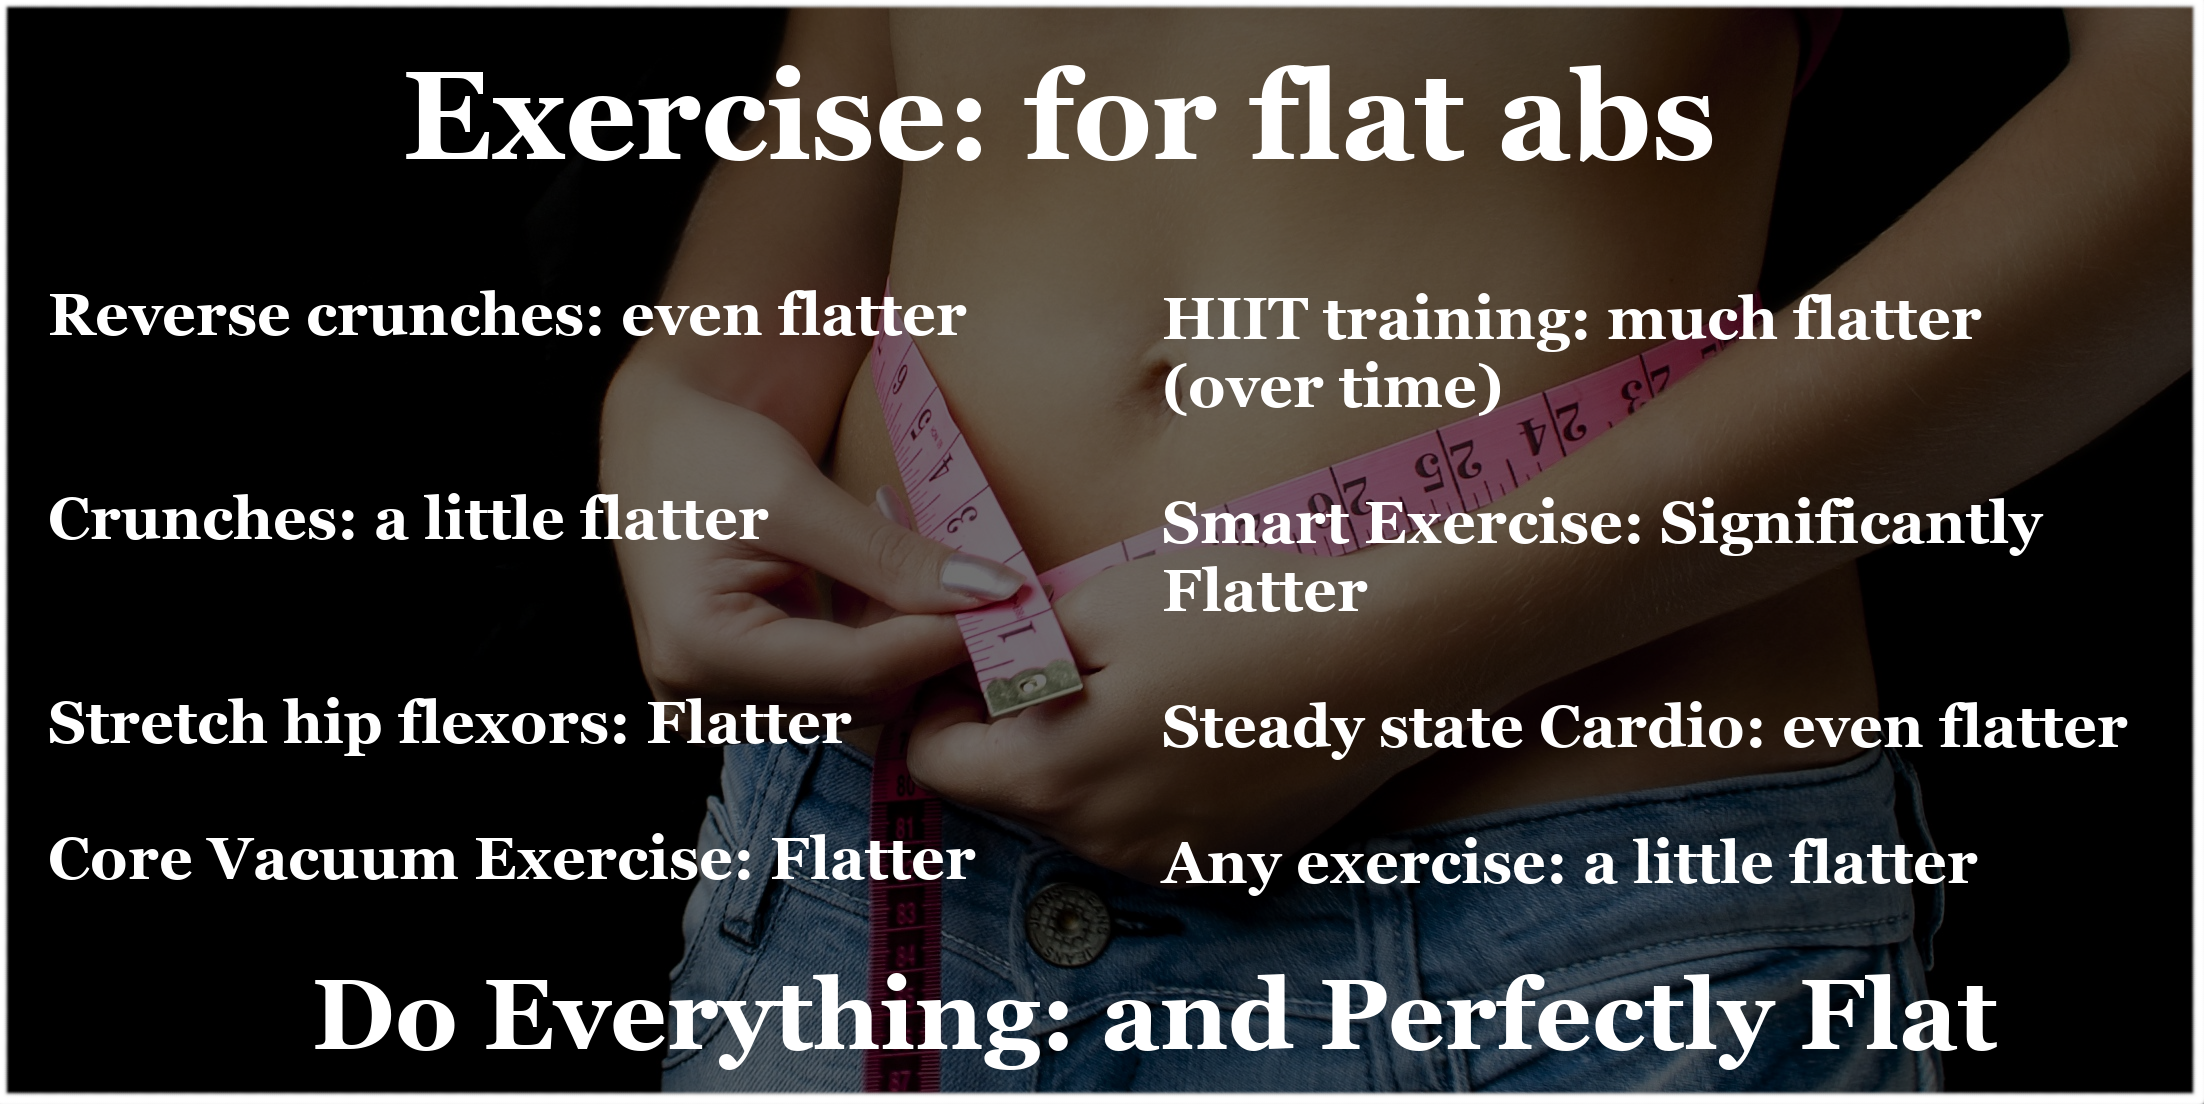 Exercise - For Flat Abs